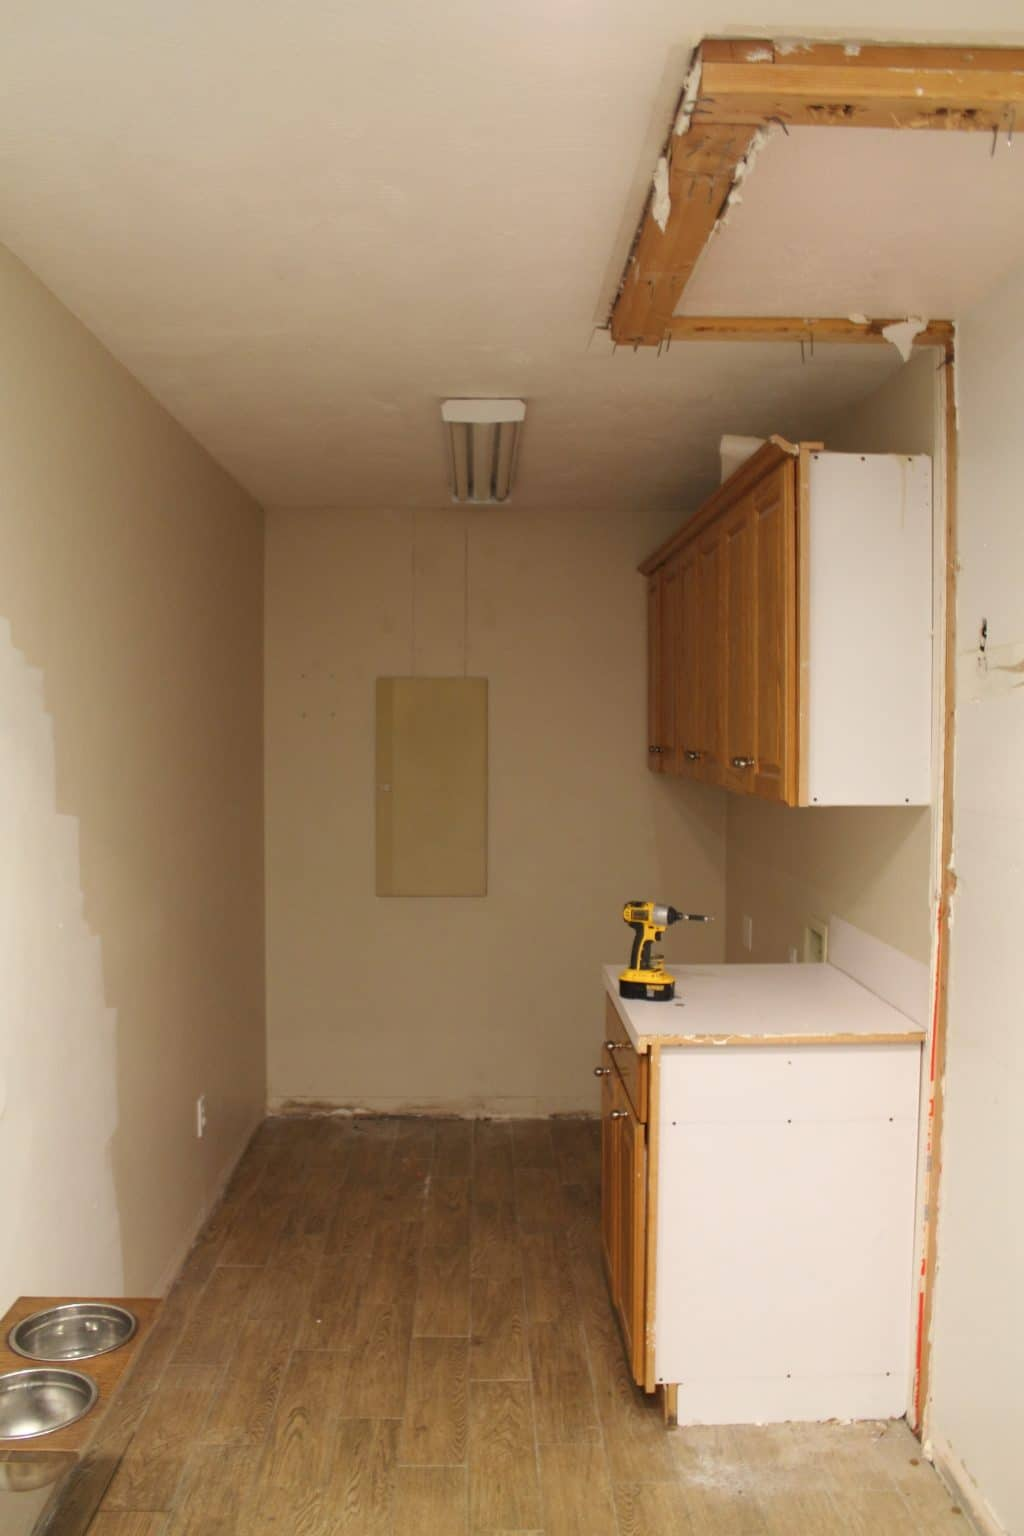 We Had To Move Our Laundry Room Before We Started The Kitchen, Because A  Big Part Of The Kitchen Plans Was Adding A Walk In Pantry.